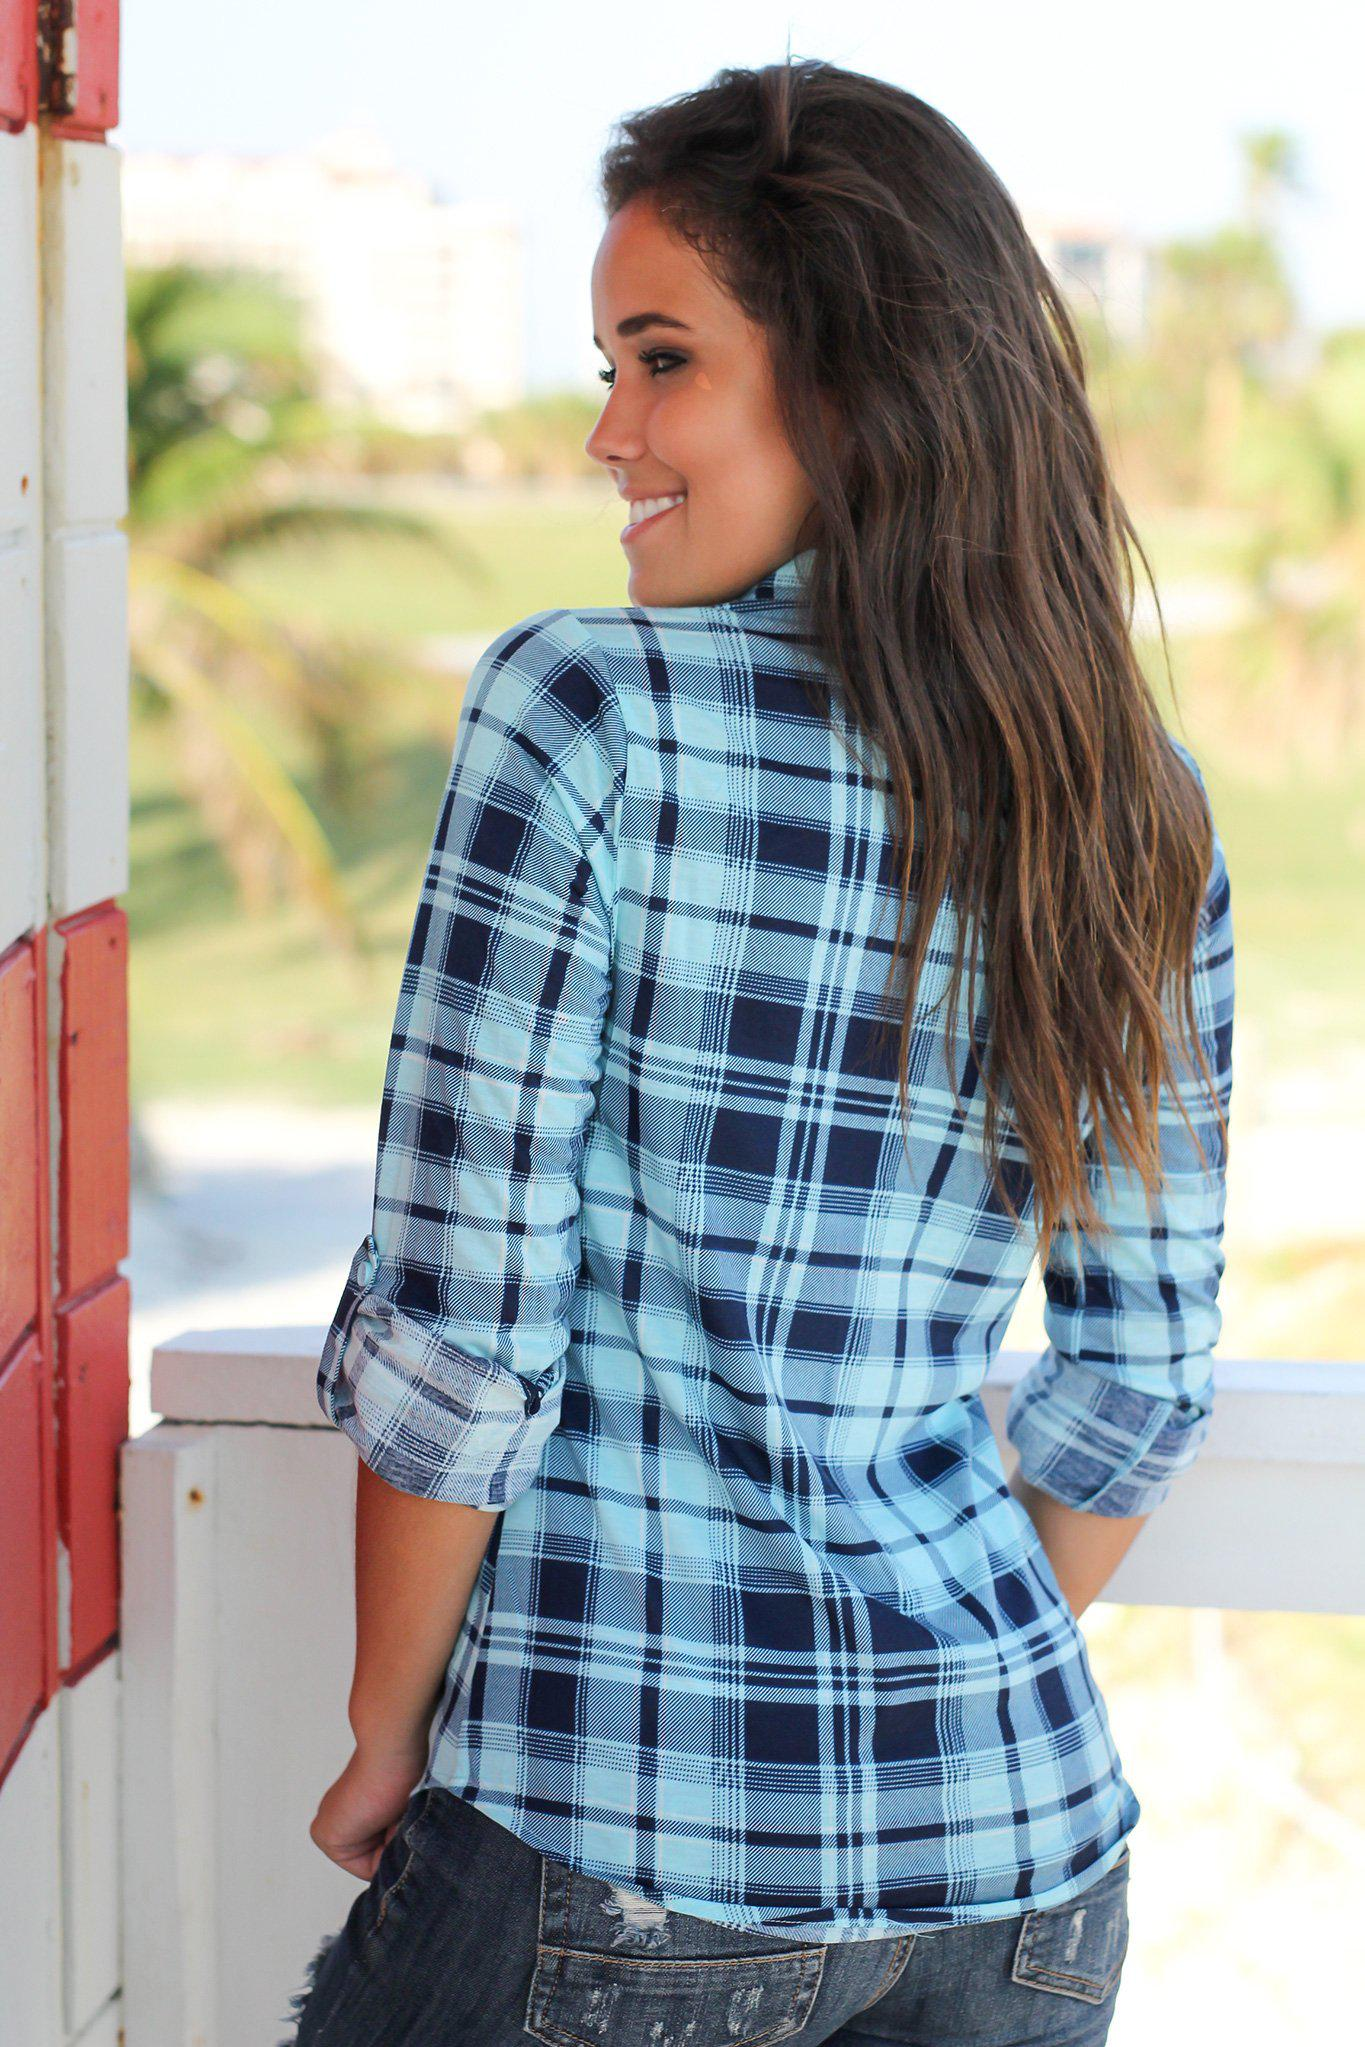 Aqua and Navy Plaid Top